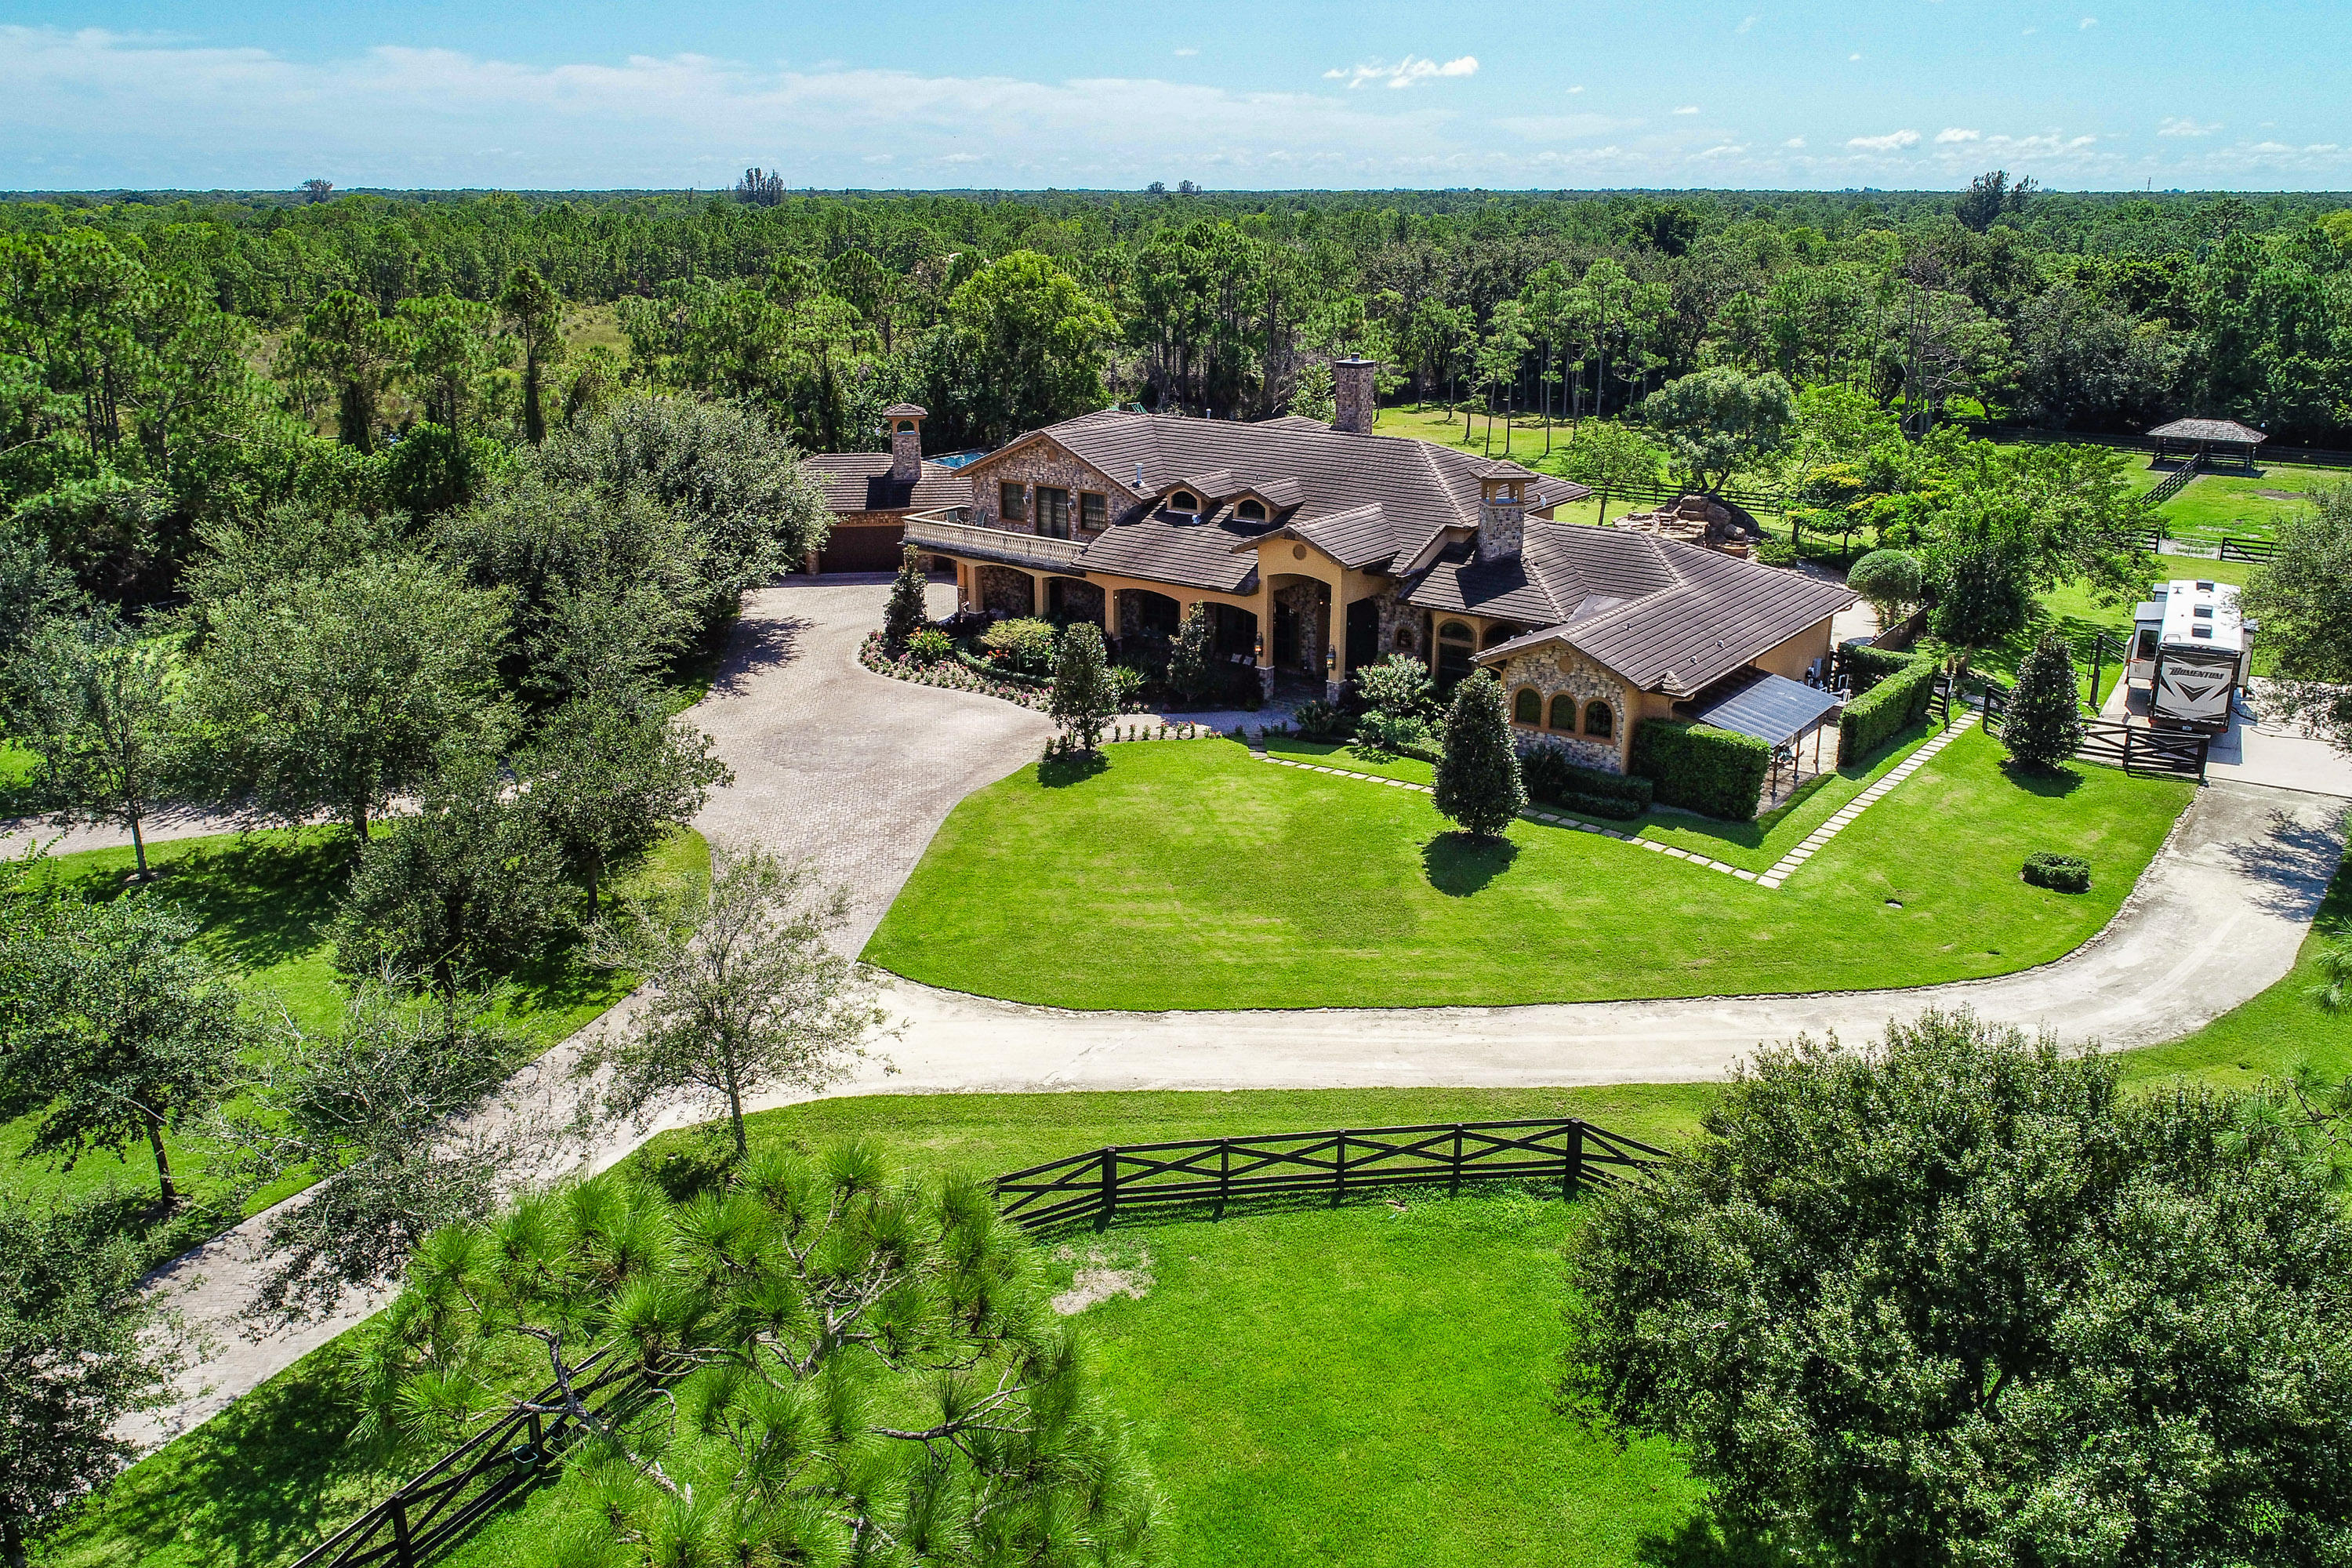 RANCH ACRES HOMES